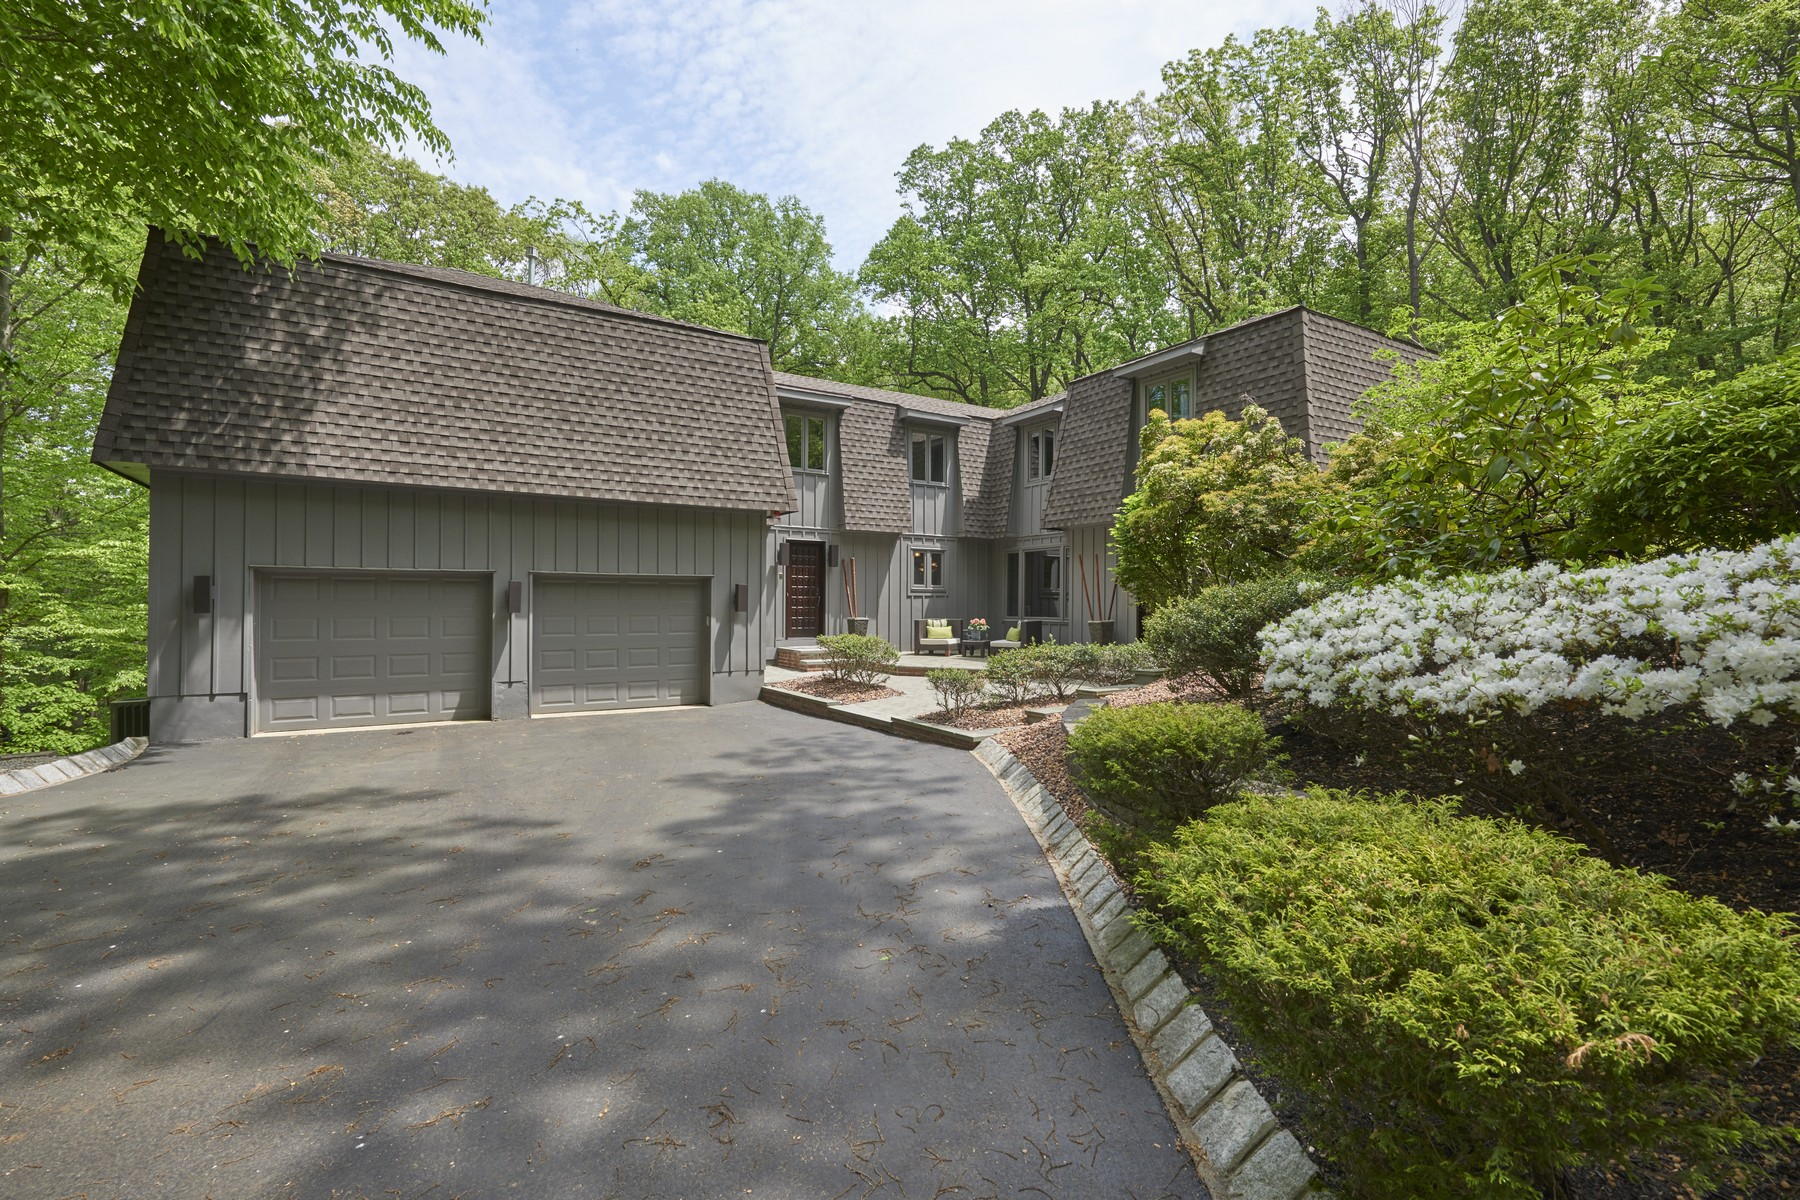 Single Family Home for Sale at Artfully Designed Retreat 5 Twin Brooks Court Holmdel, New Jersey 07733 United States